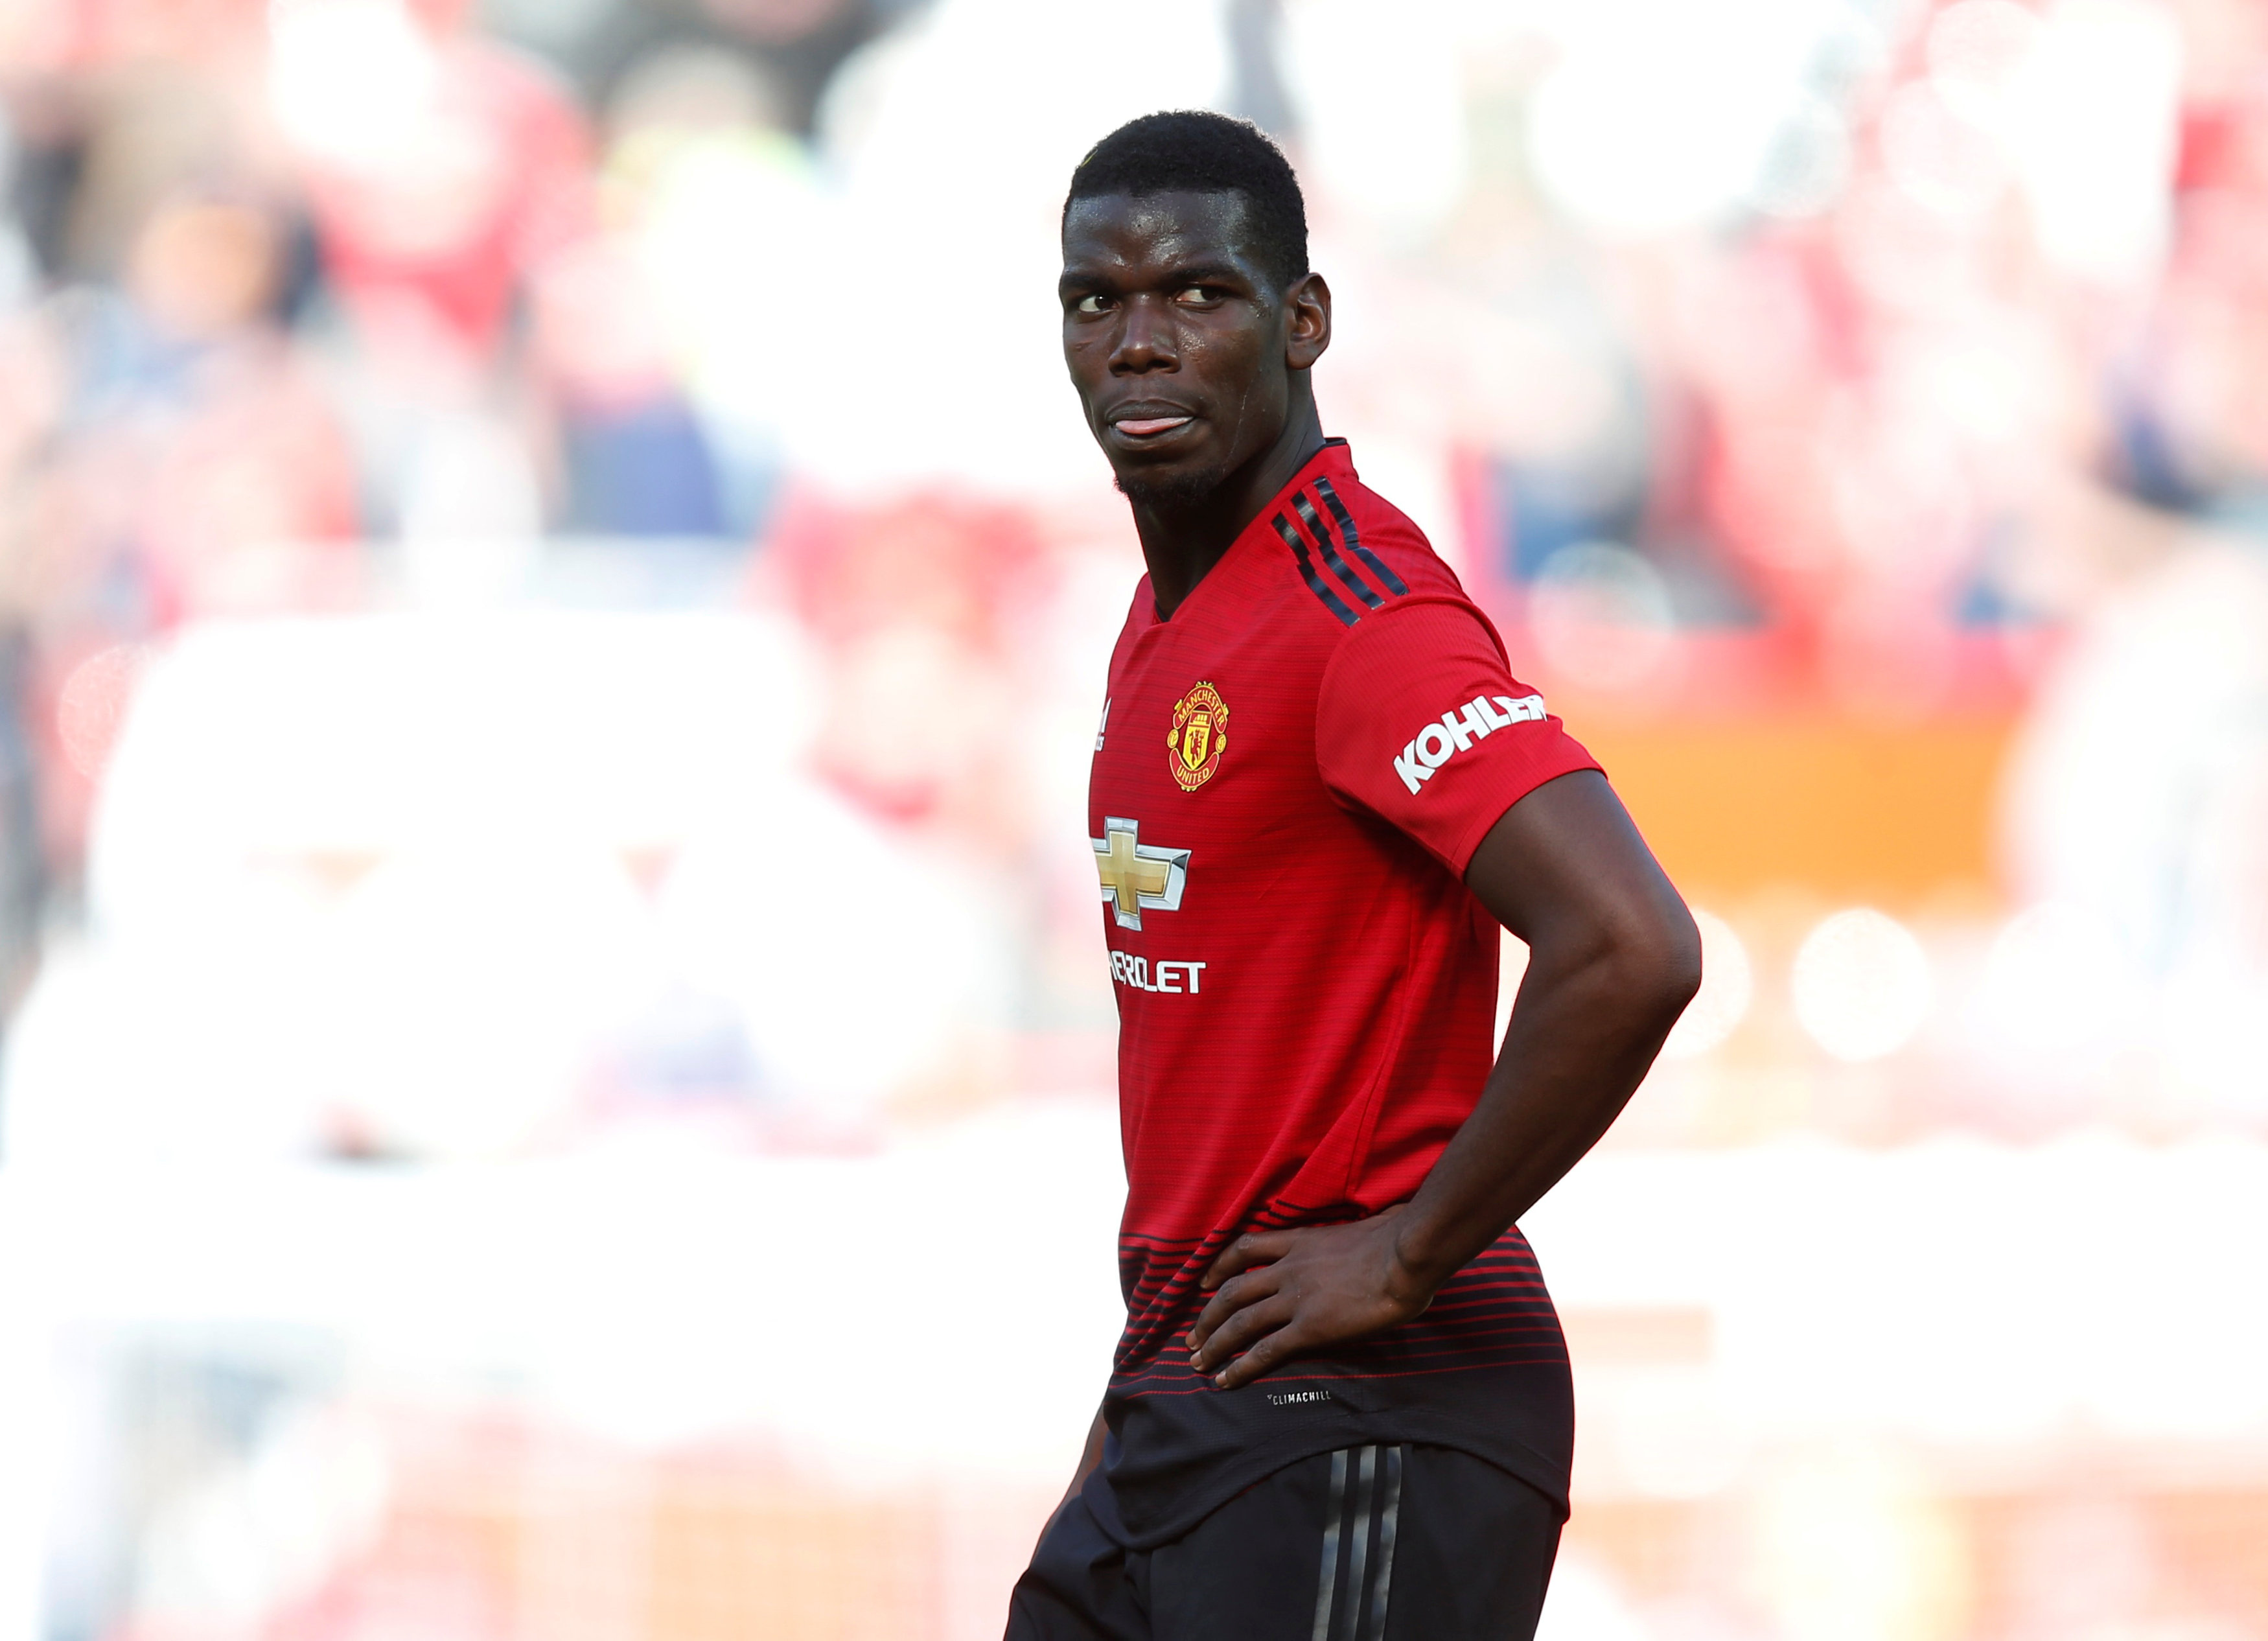 Images Of Manchester United Players